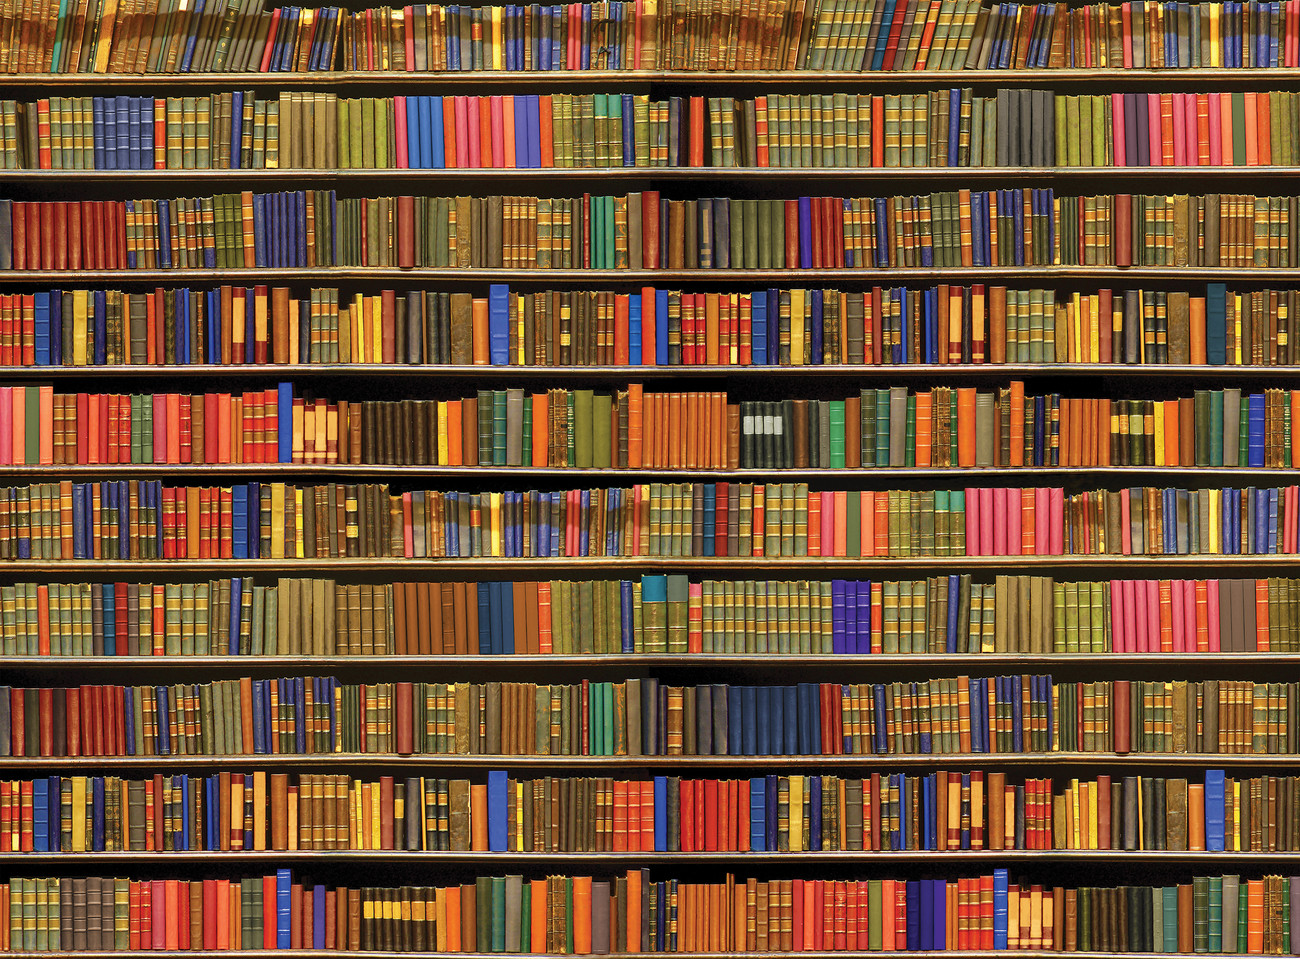 Bookshelf colored wall mural buy at europosters for Bookcase wall mural